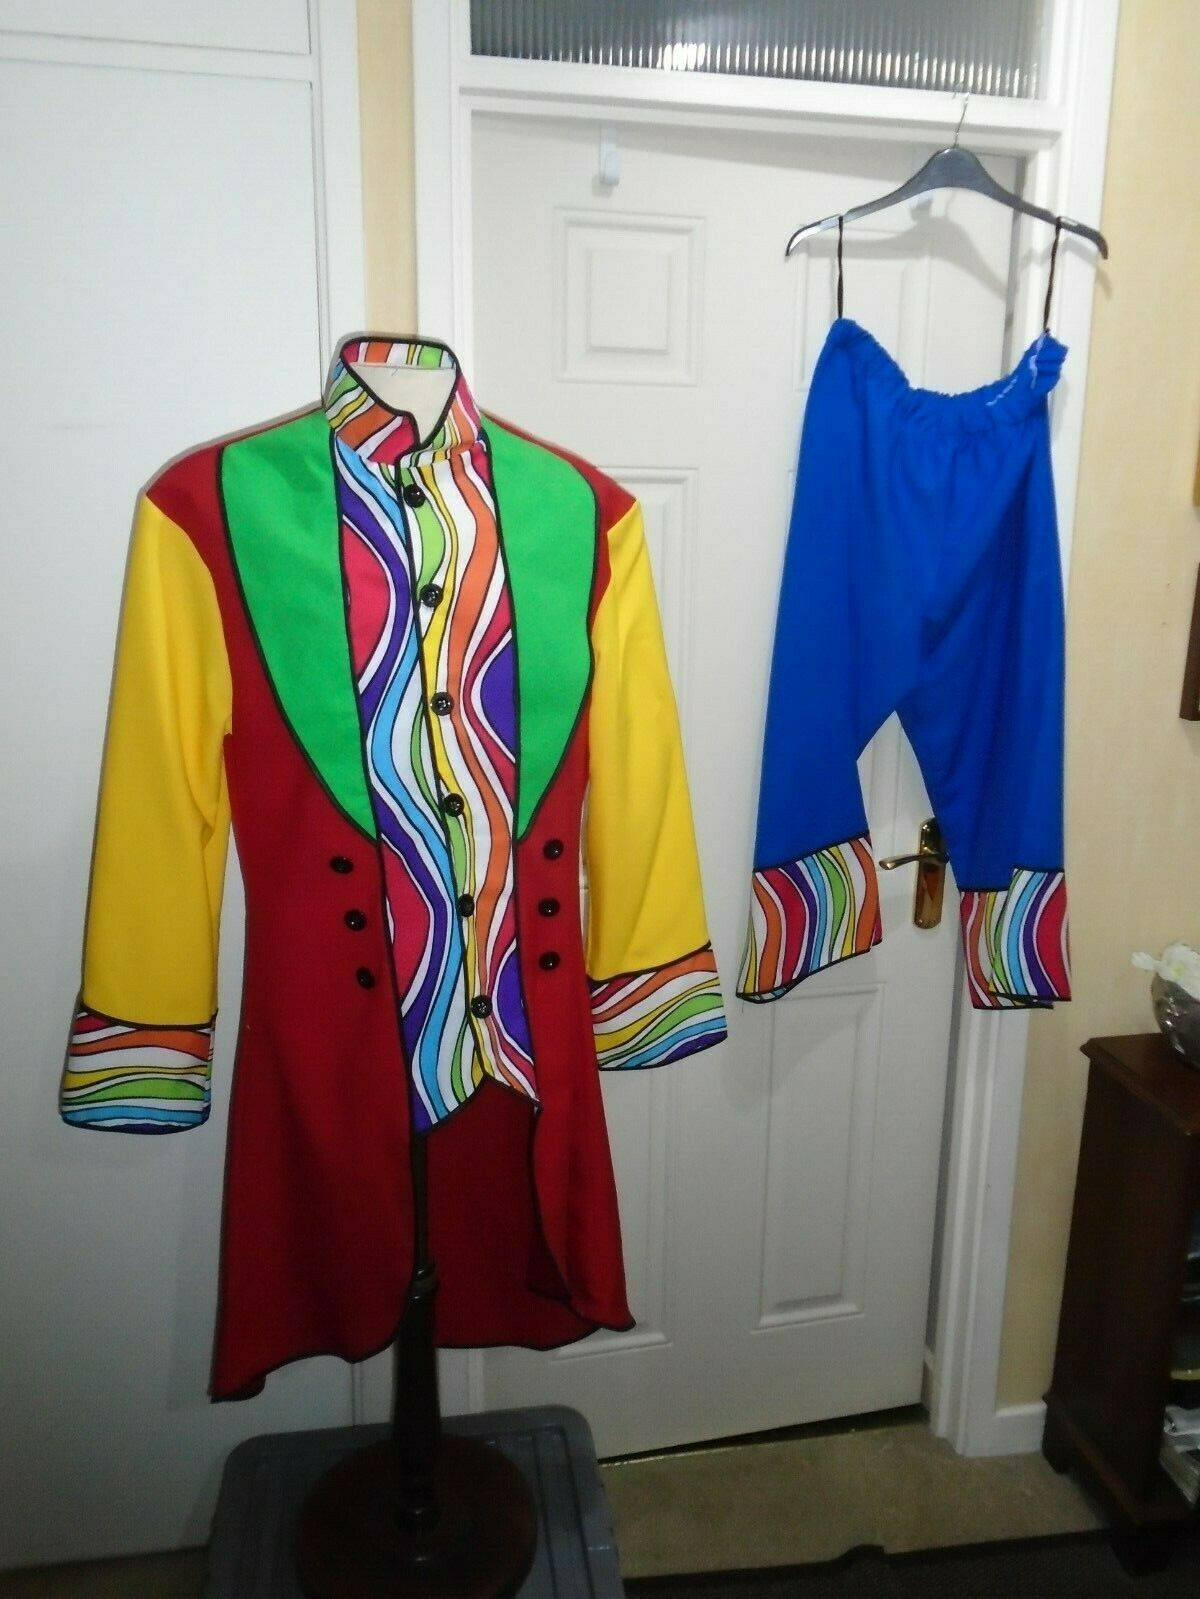 Clown rainbow coat, trousers Large size 46 inch chest circus/ theatre